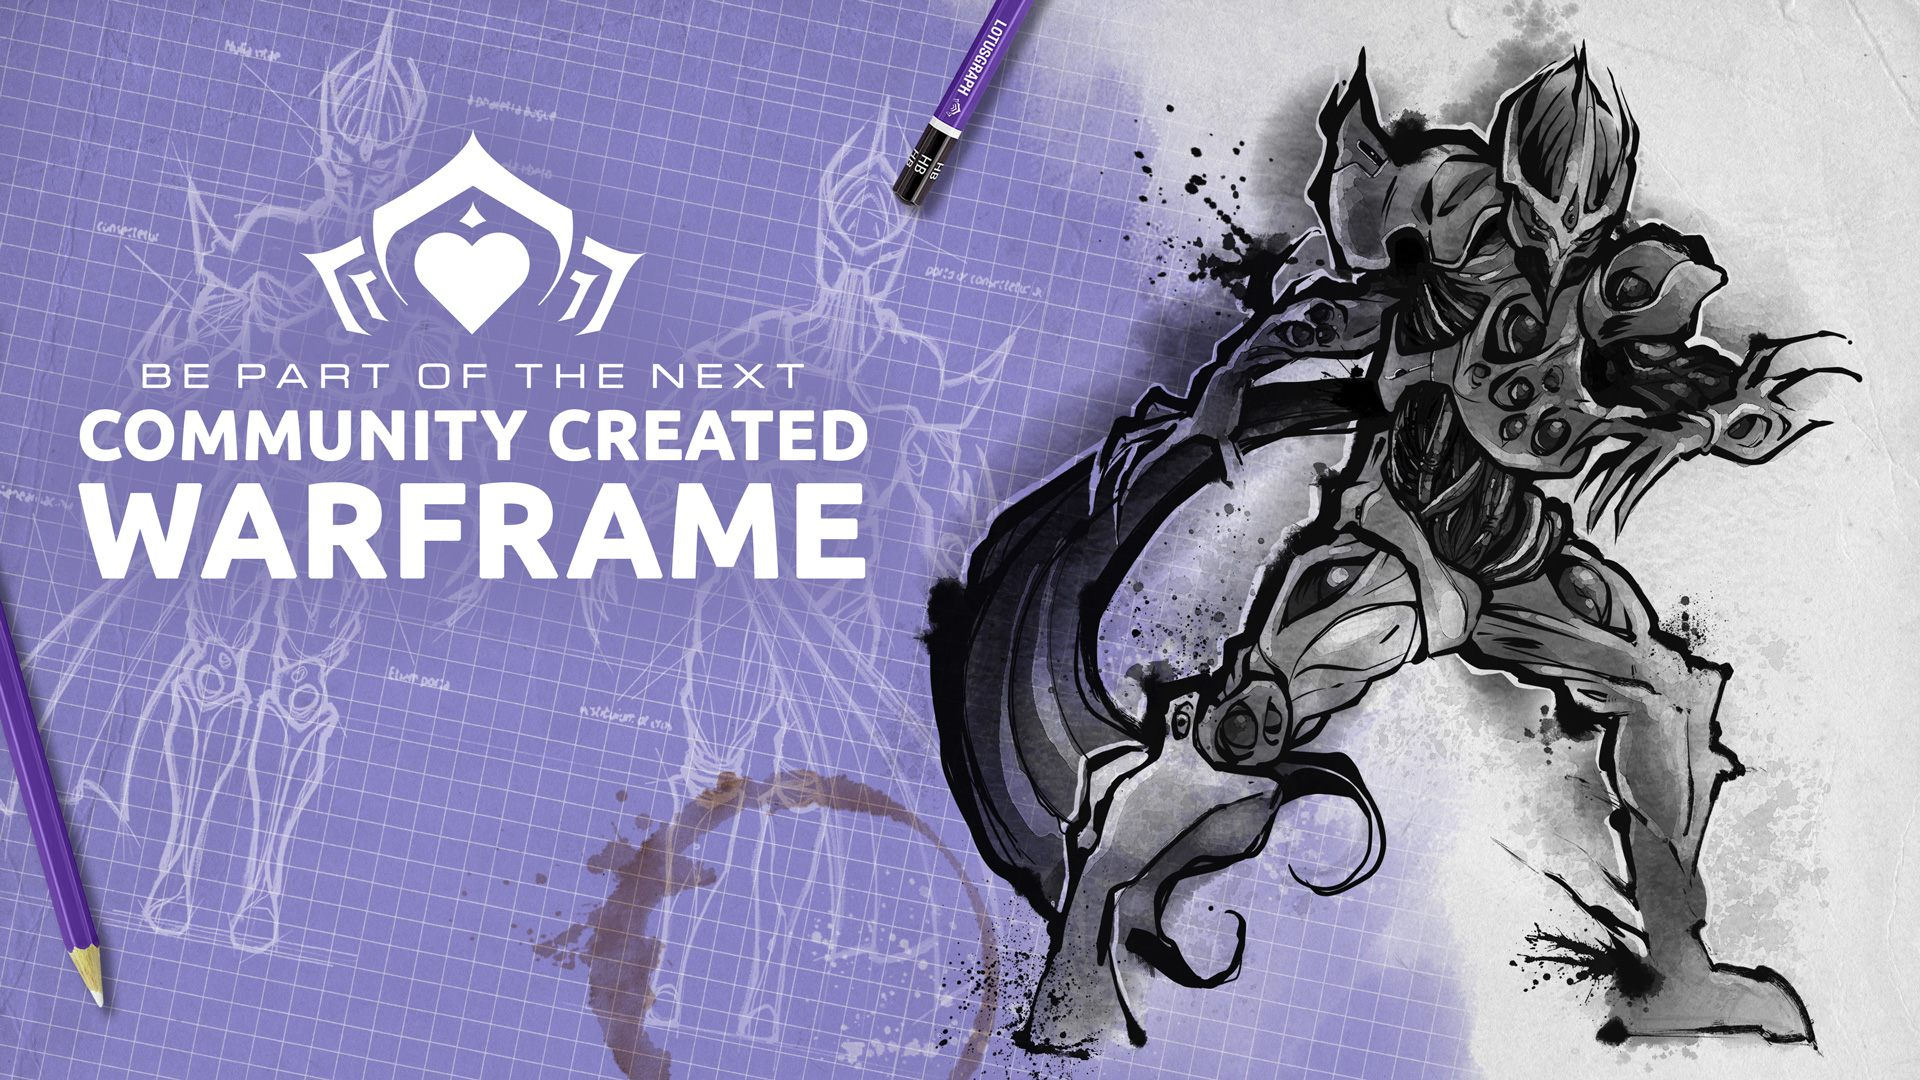 Be Part Of The Next Community Created Warframe Announcements Events Warframe Forums Join the warframe community by participating in the forums and get to know your fellow warframe, the warframe logo, and evolution engine are registered trademarks of digital extremes ltd. community created warframe